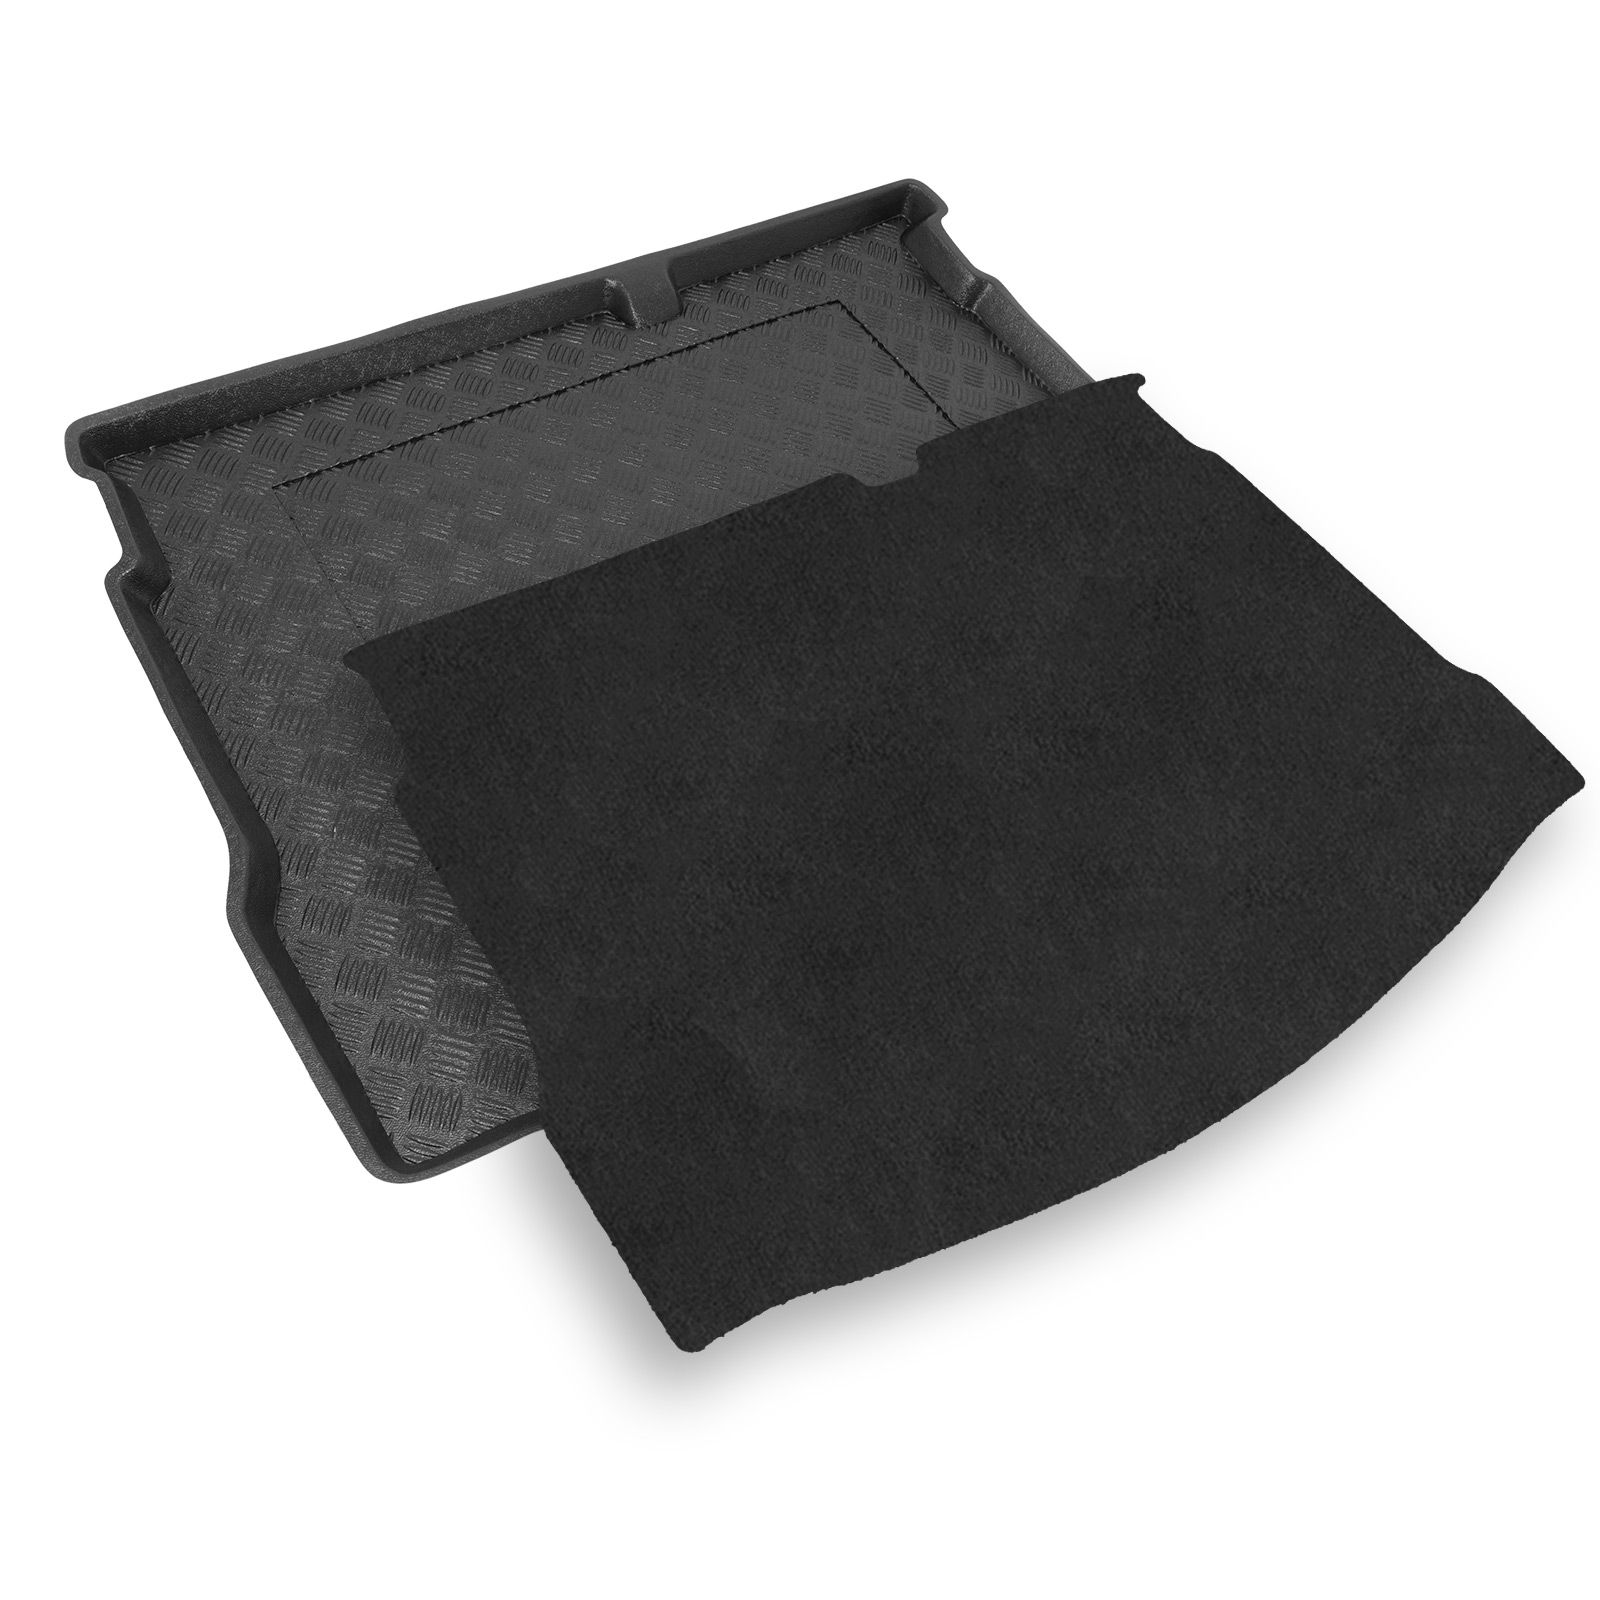 Ford Focus Estate 2011 Tailored Pvc Boot Liner Tray